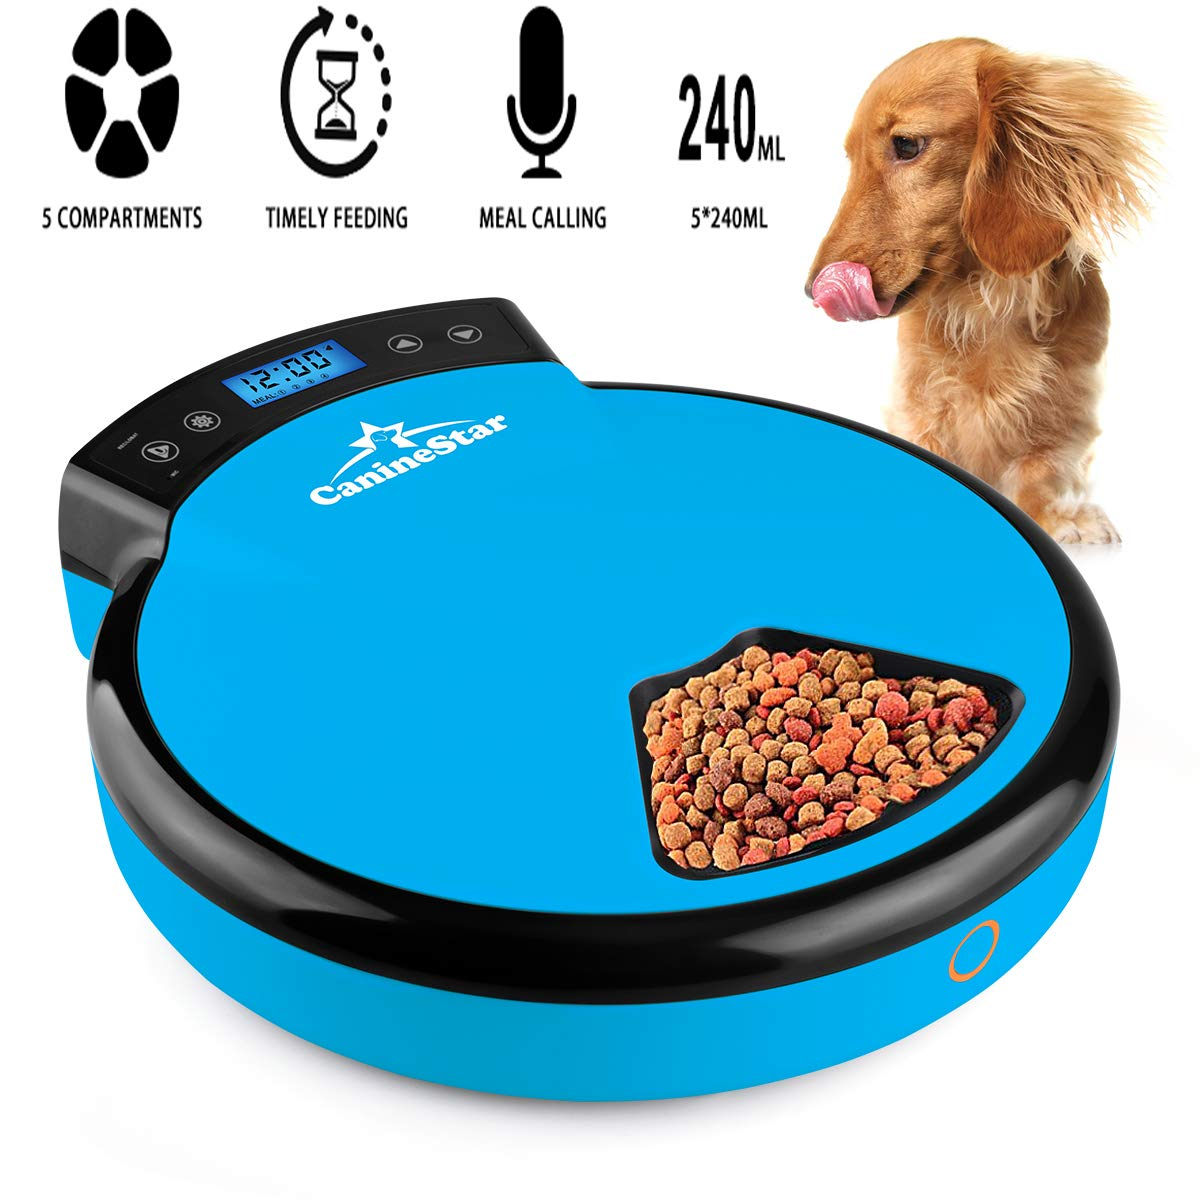 Automatic Pet Feeder for Cats Dogs, 5 Meal Food Dispenser Trays Cat Feeder Dry Wet Food Auto Feeder by CanineStar